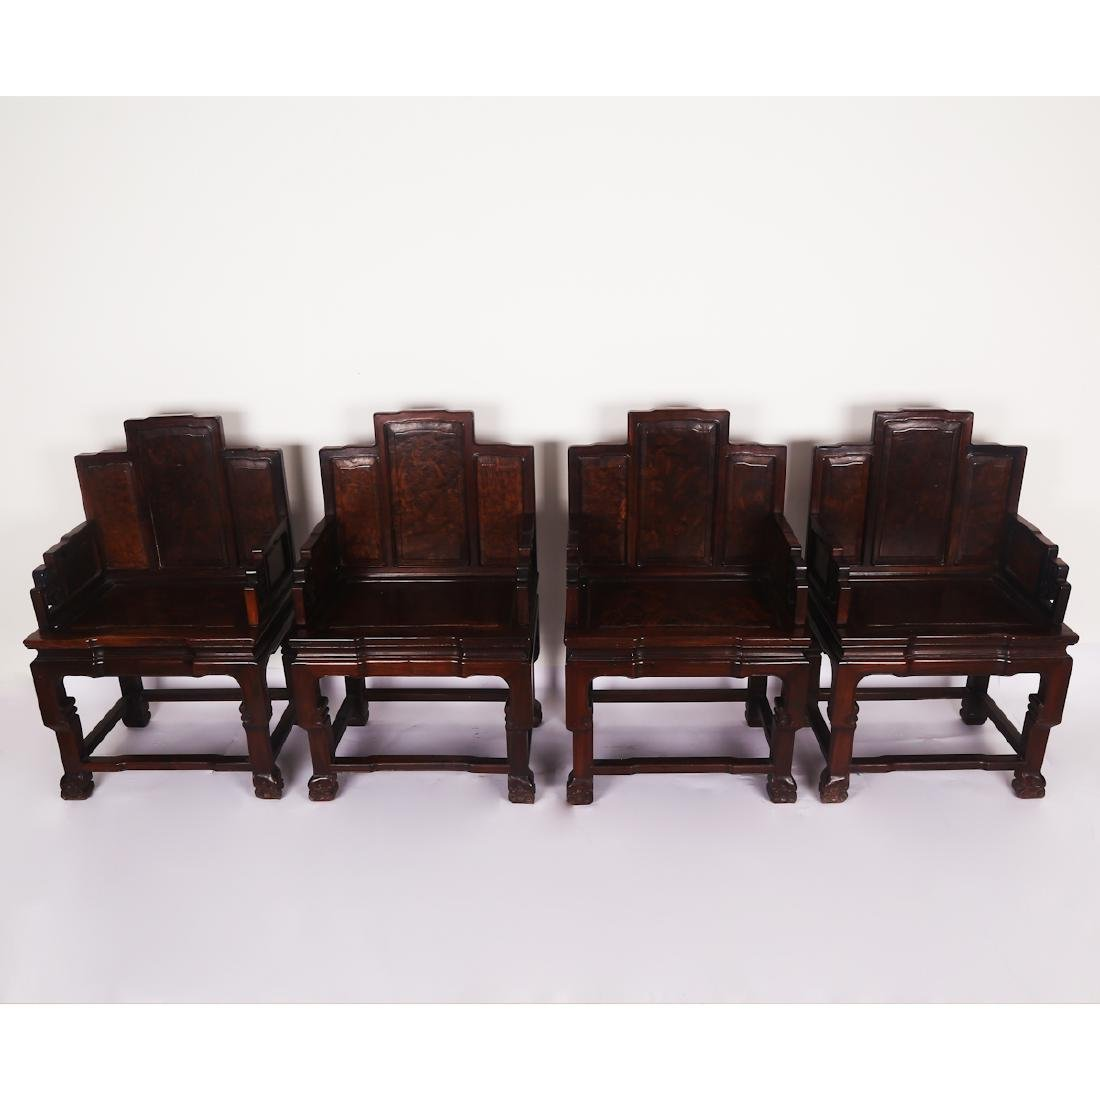 CHINESE ROSEWOOD CHAIR SET - 2